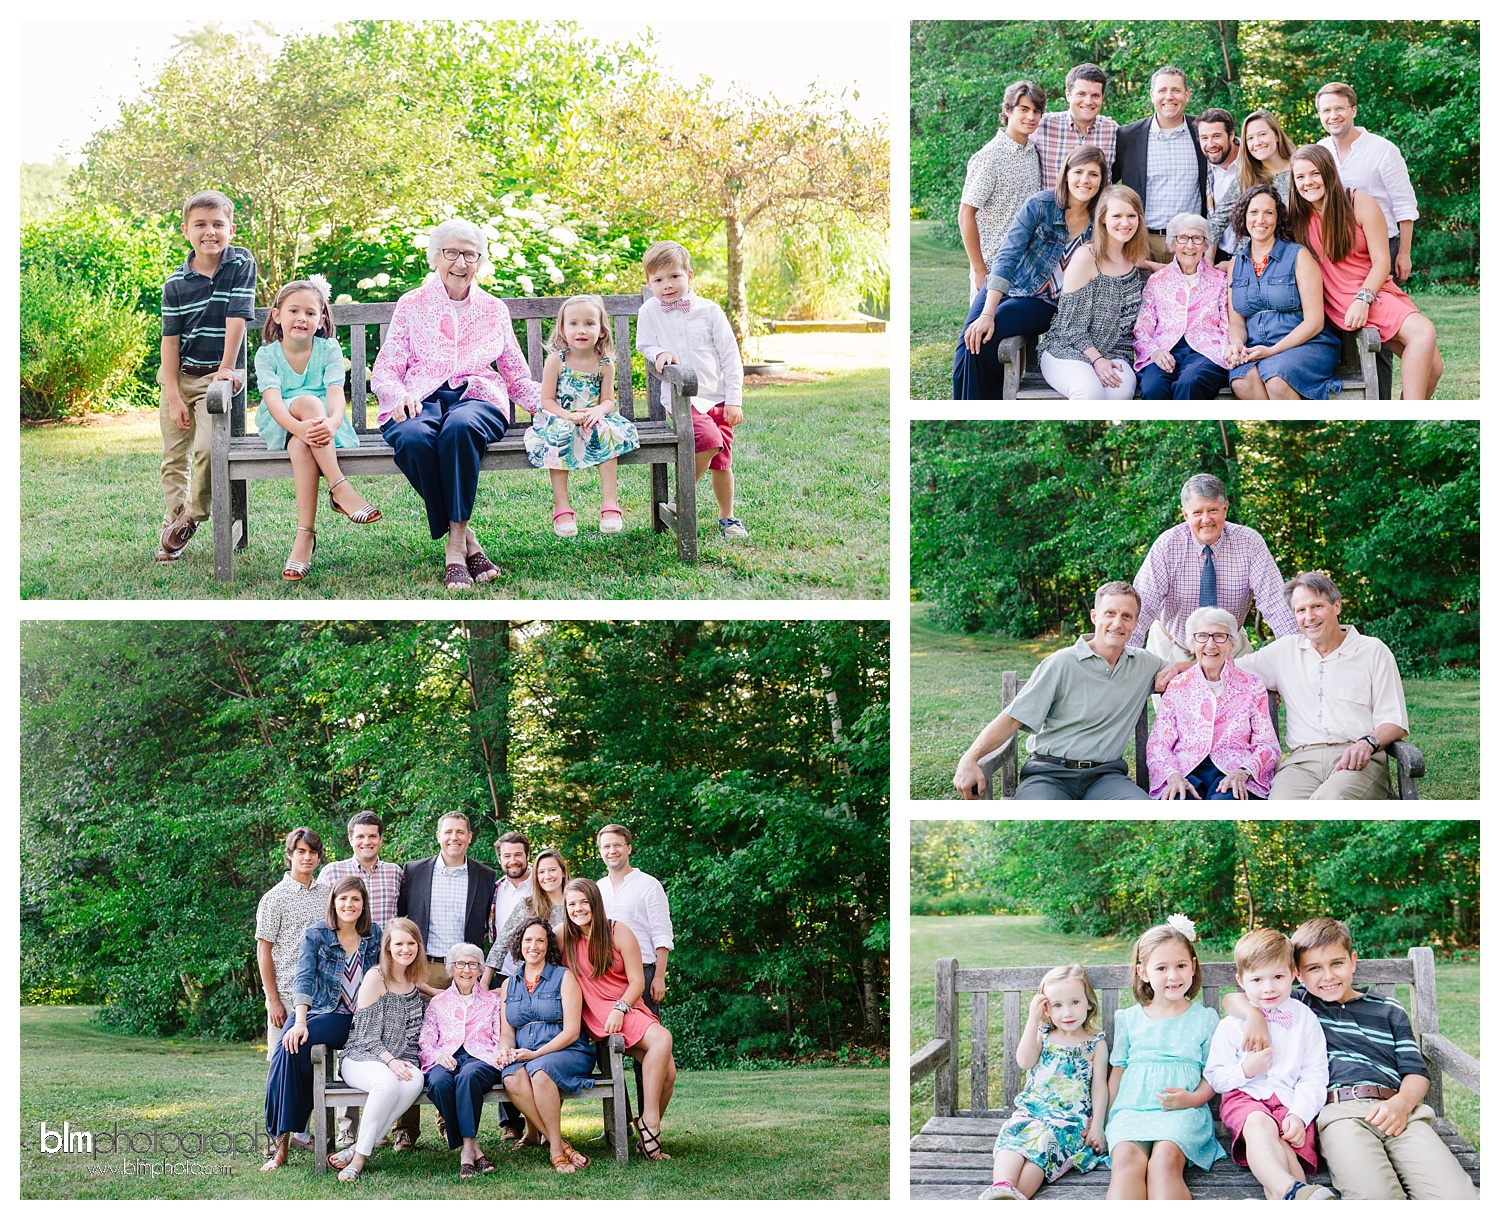 2017,20170729,7,91,Artistic,BLM,Candid,Creative,Dublin,Family Photography,Family party,Family photos,Home,Learned,Learned Rd,Learned Road,Martha Duffy,NH,NH Family Photographer,NH Wedding,Natural,Natural Light,Niles,Niles Family,Outdoor,Personal,Pet,Peterborough Wedding Photographer,Photo,Photographer,Photography,Photojournalistic,Portrait,Professional,Professional Wedding Photography,Rd,Road,USA,United States,Vivid,Wedding Photography,family reunion,www.blmphoto.com,©BLM Photography 2017,